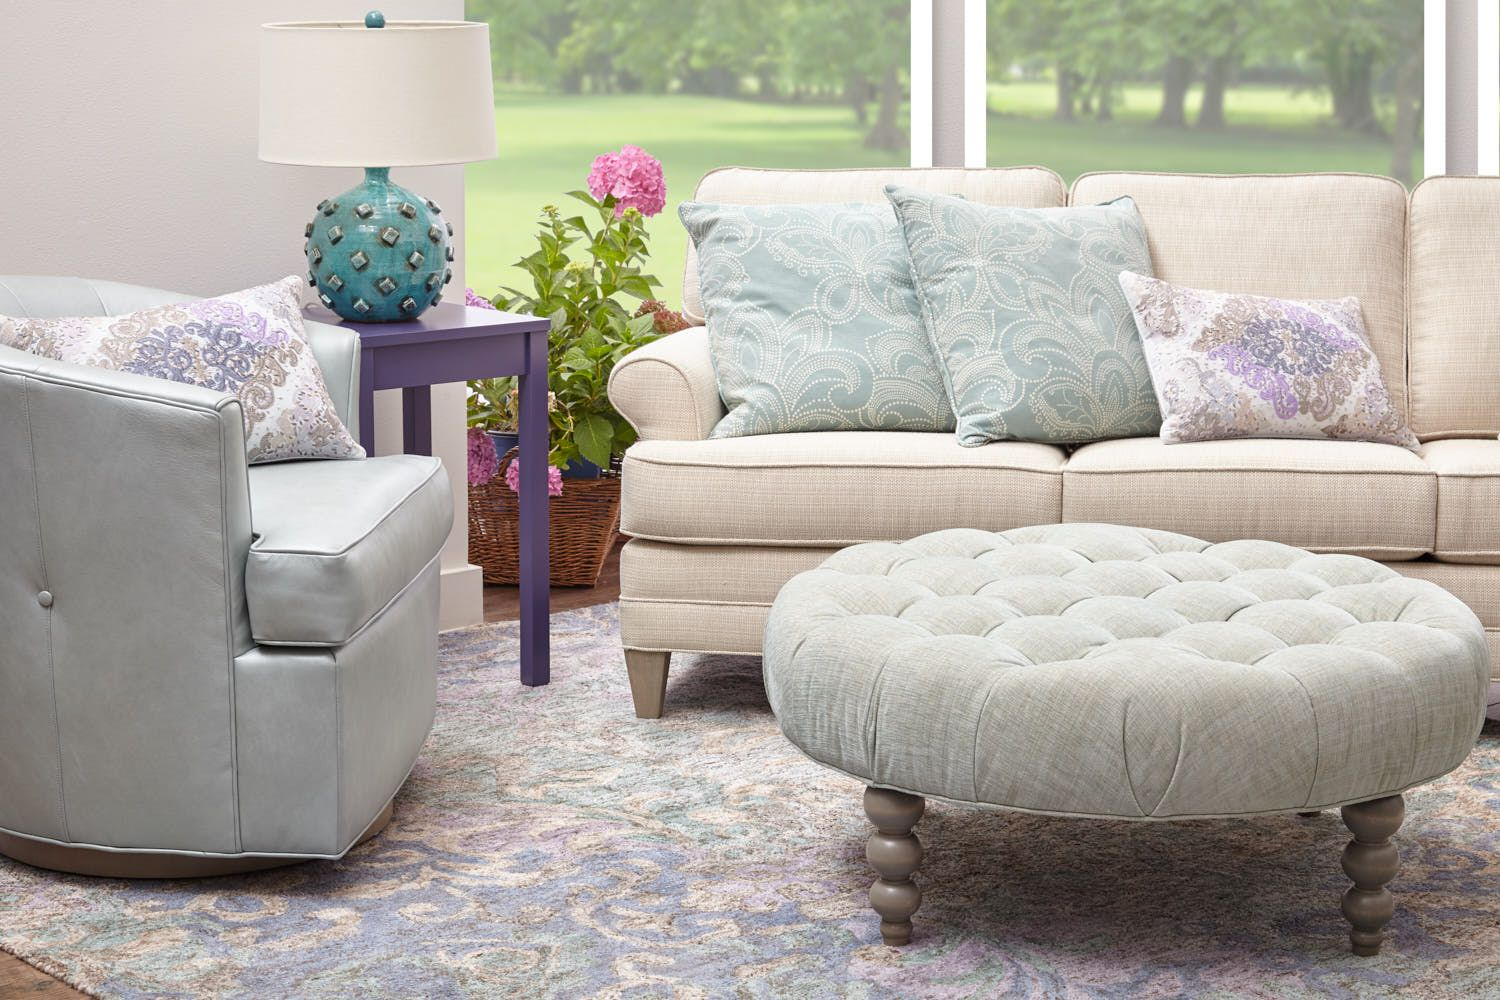 Admirable Orleans Sofa Vincent Swivel Chair And Rockport Round Tufted Dailytribune Chair Design For Home Dailytribuneorg